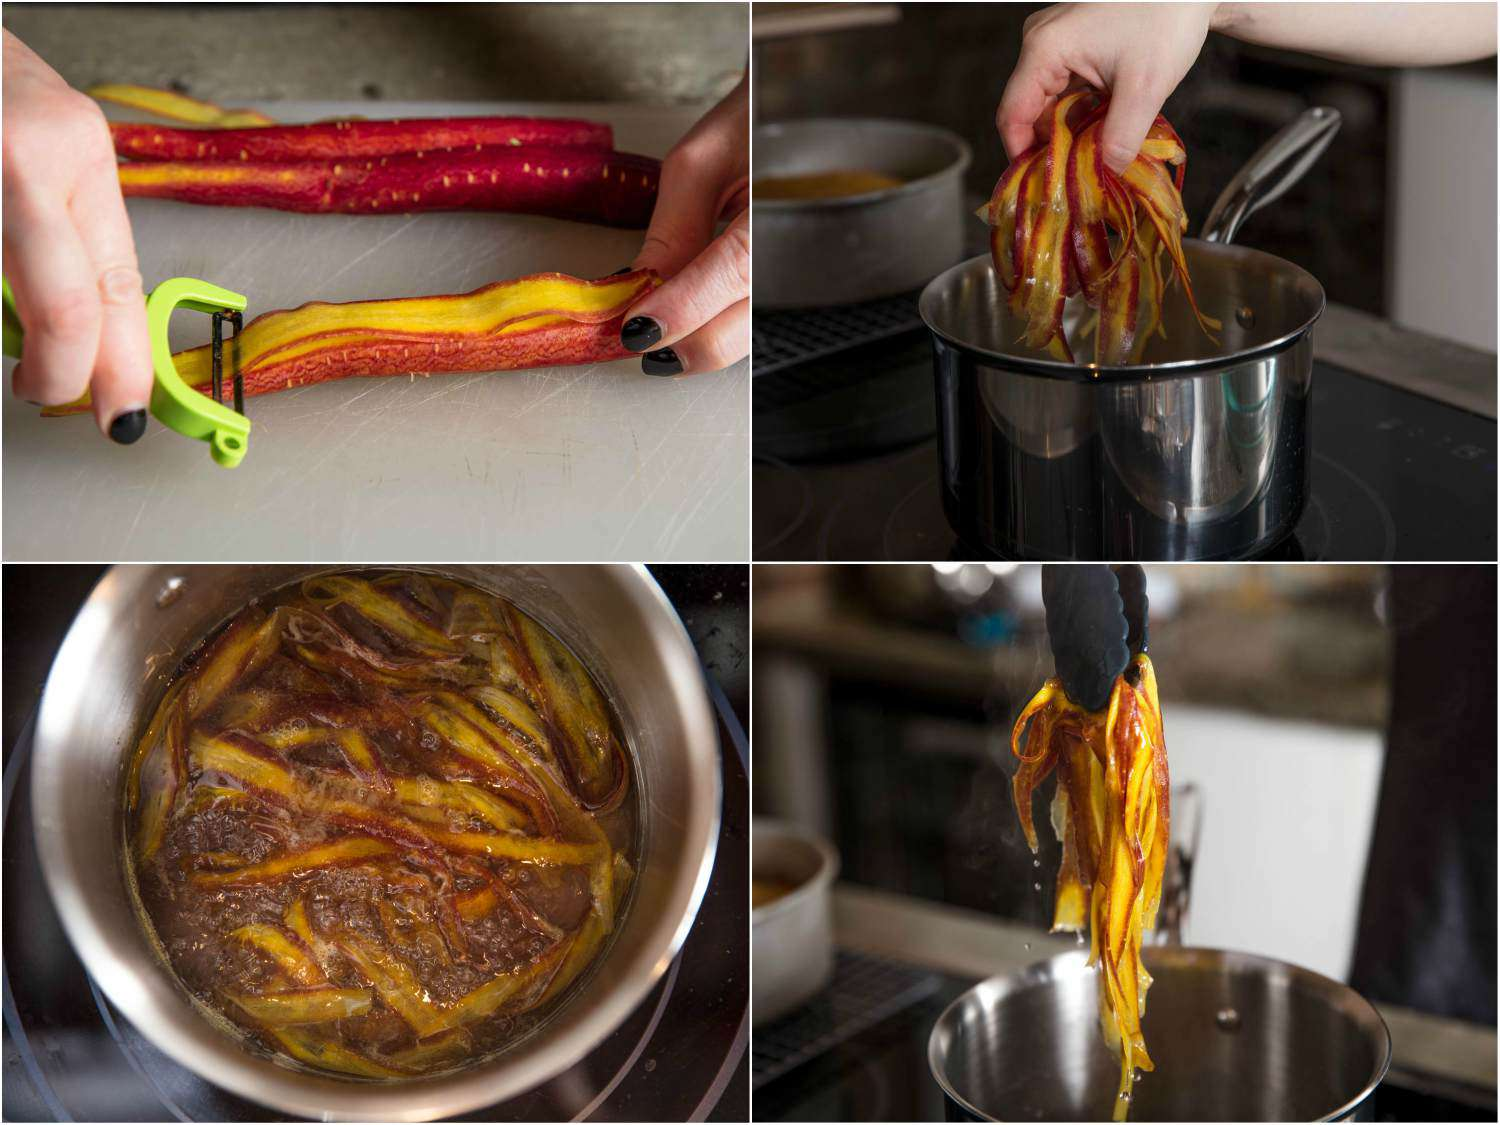 Collage of photos of making decorative carrot roses: peeling wide strips of carrot, dropping carrot strips in simple syrup, overhead shot of carrot strips in syrup, lifting strips from syrup with tongs